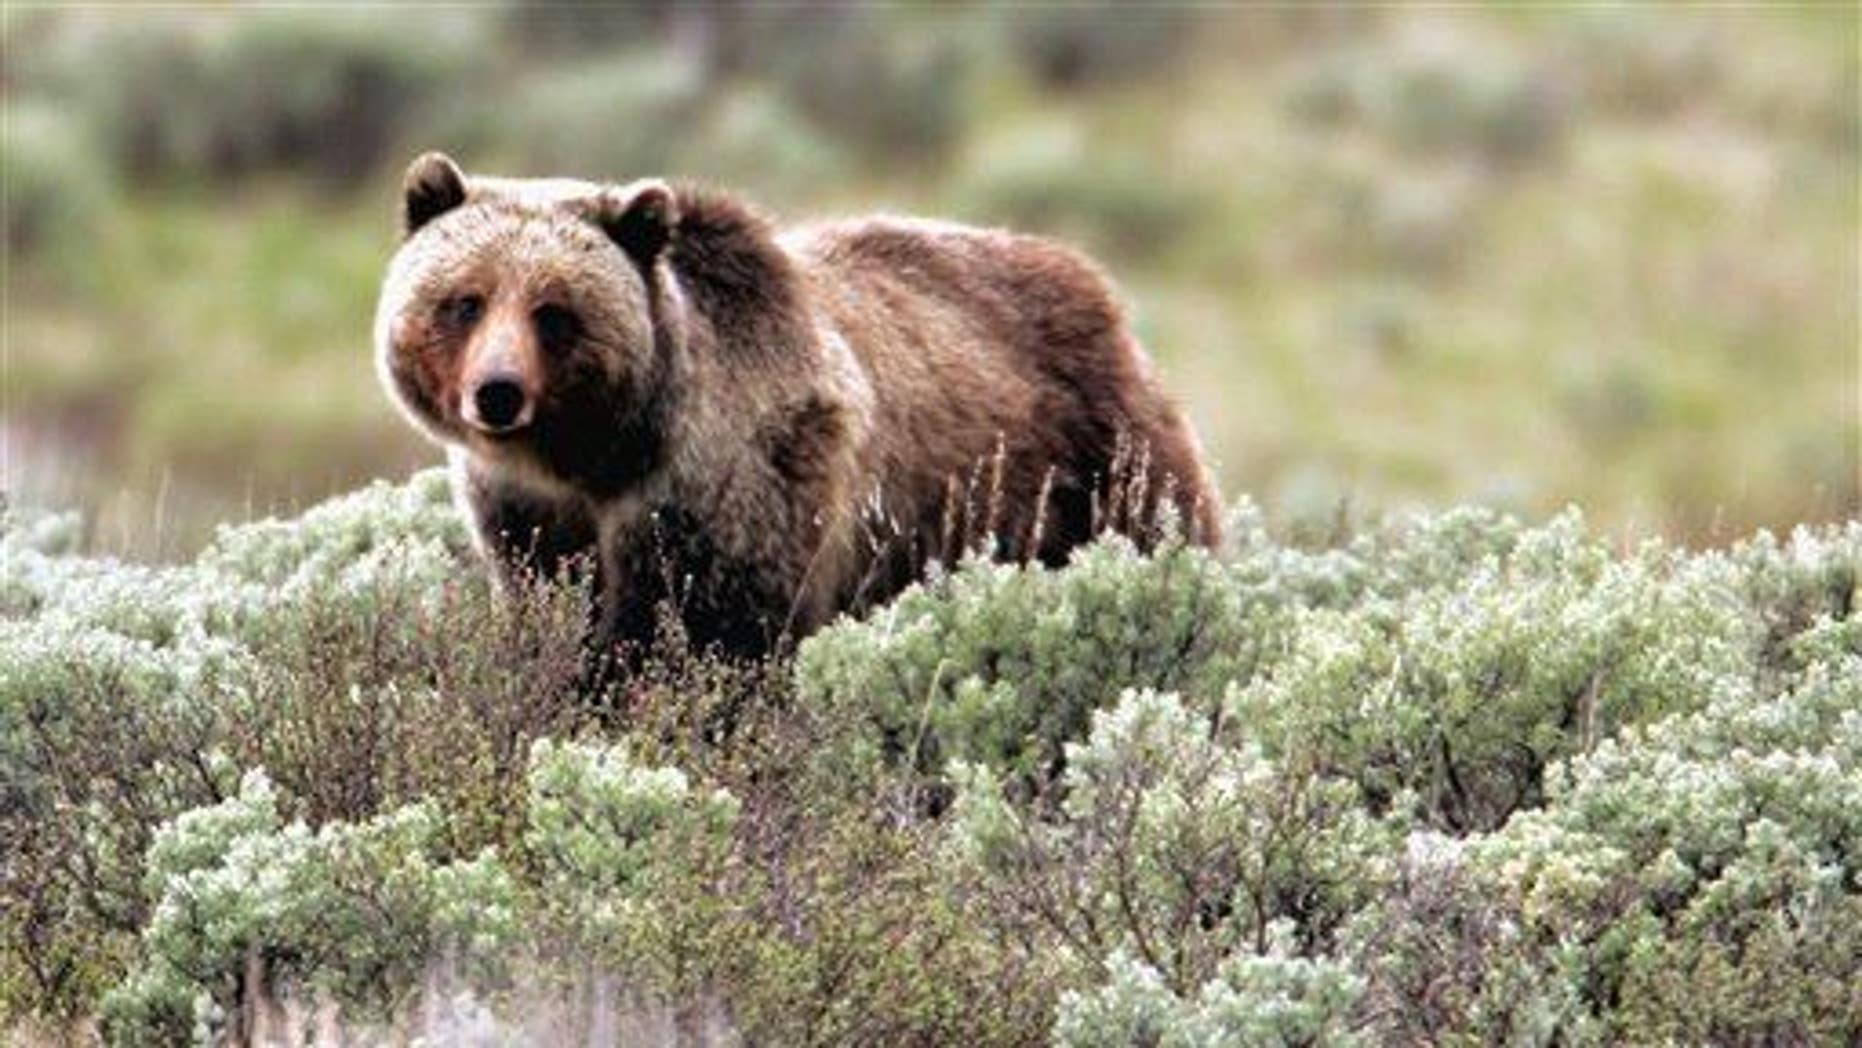 In this file photo provided by Yellowstone National Park, a grizzly bear moves through the park.